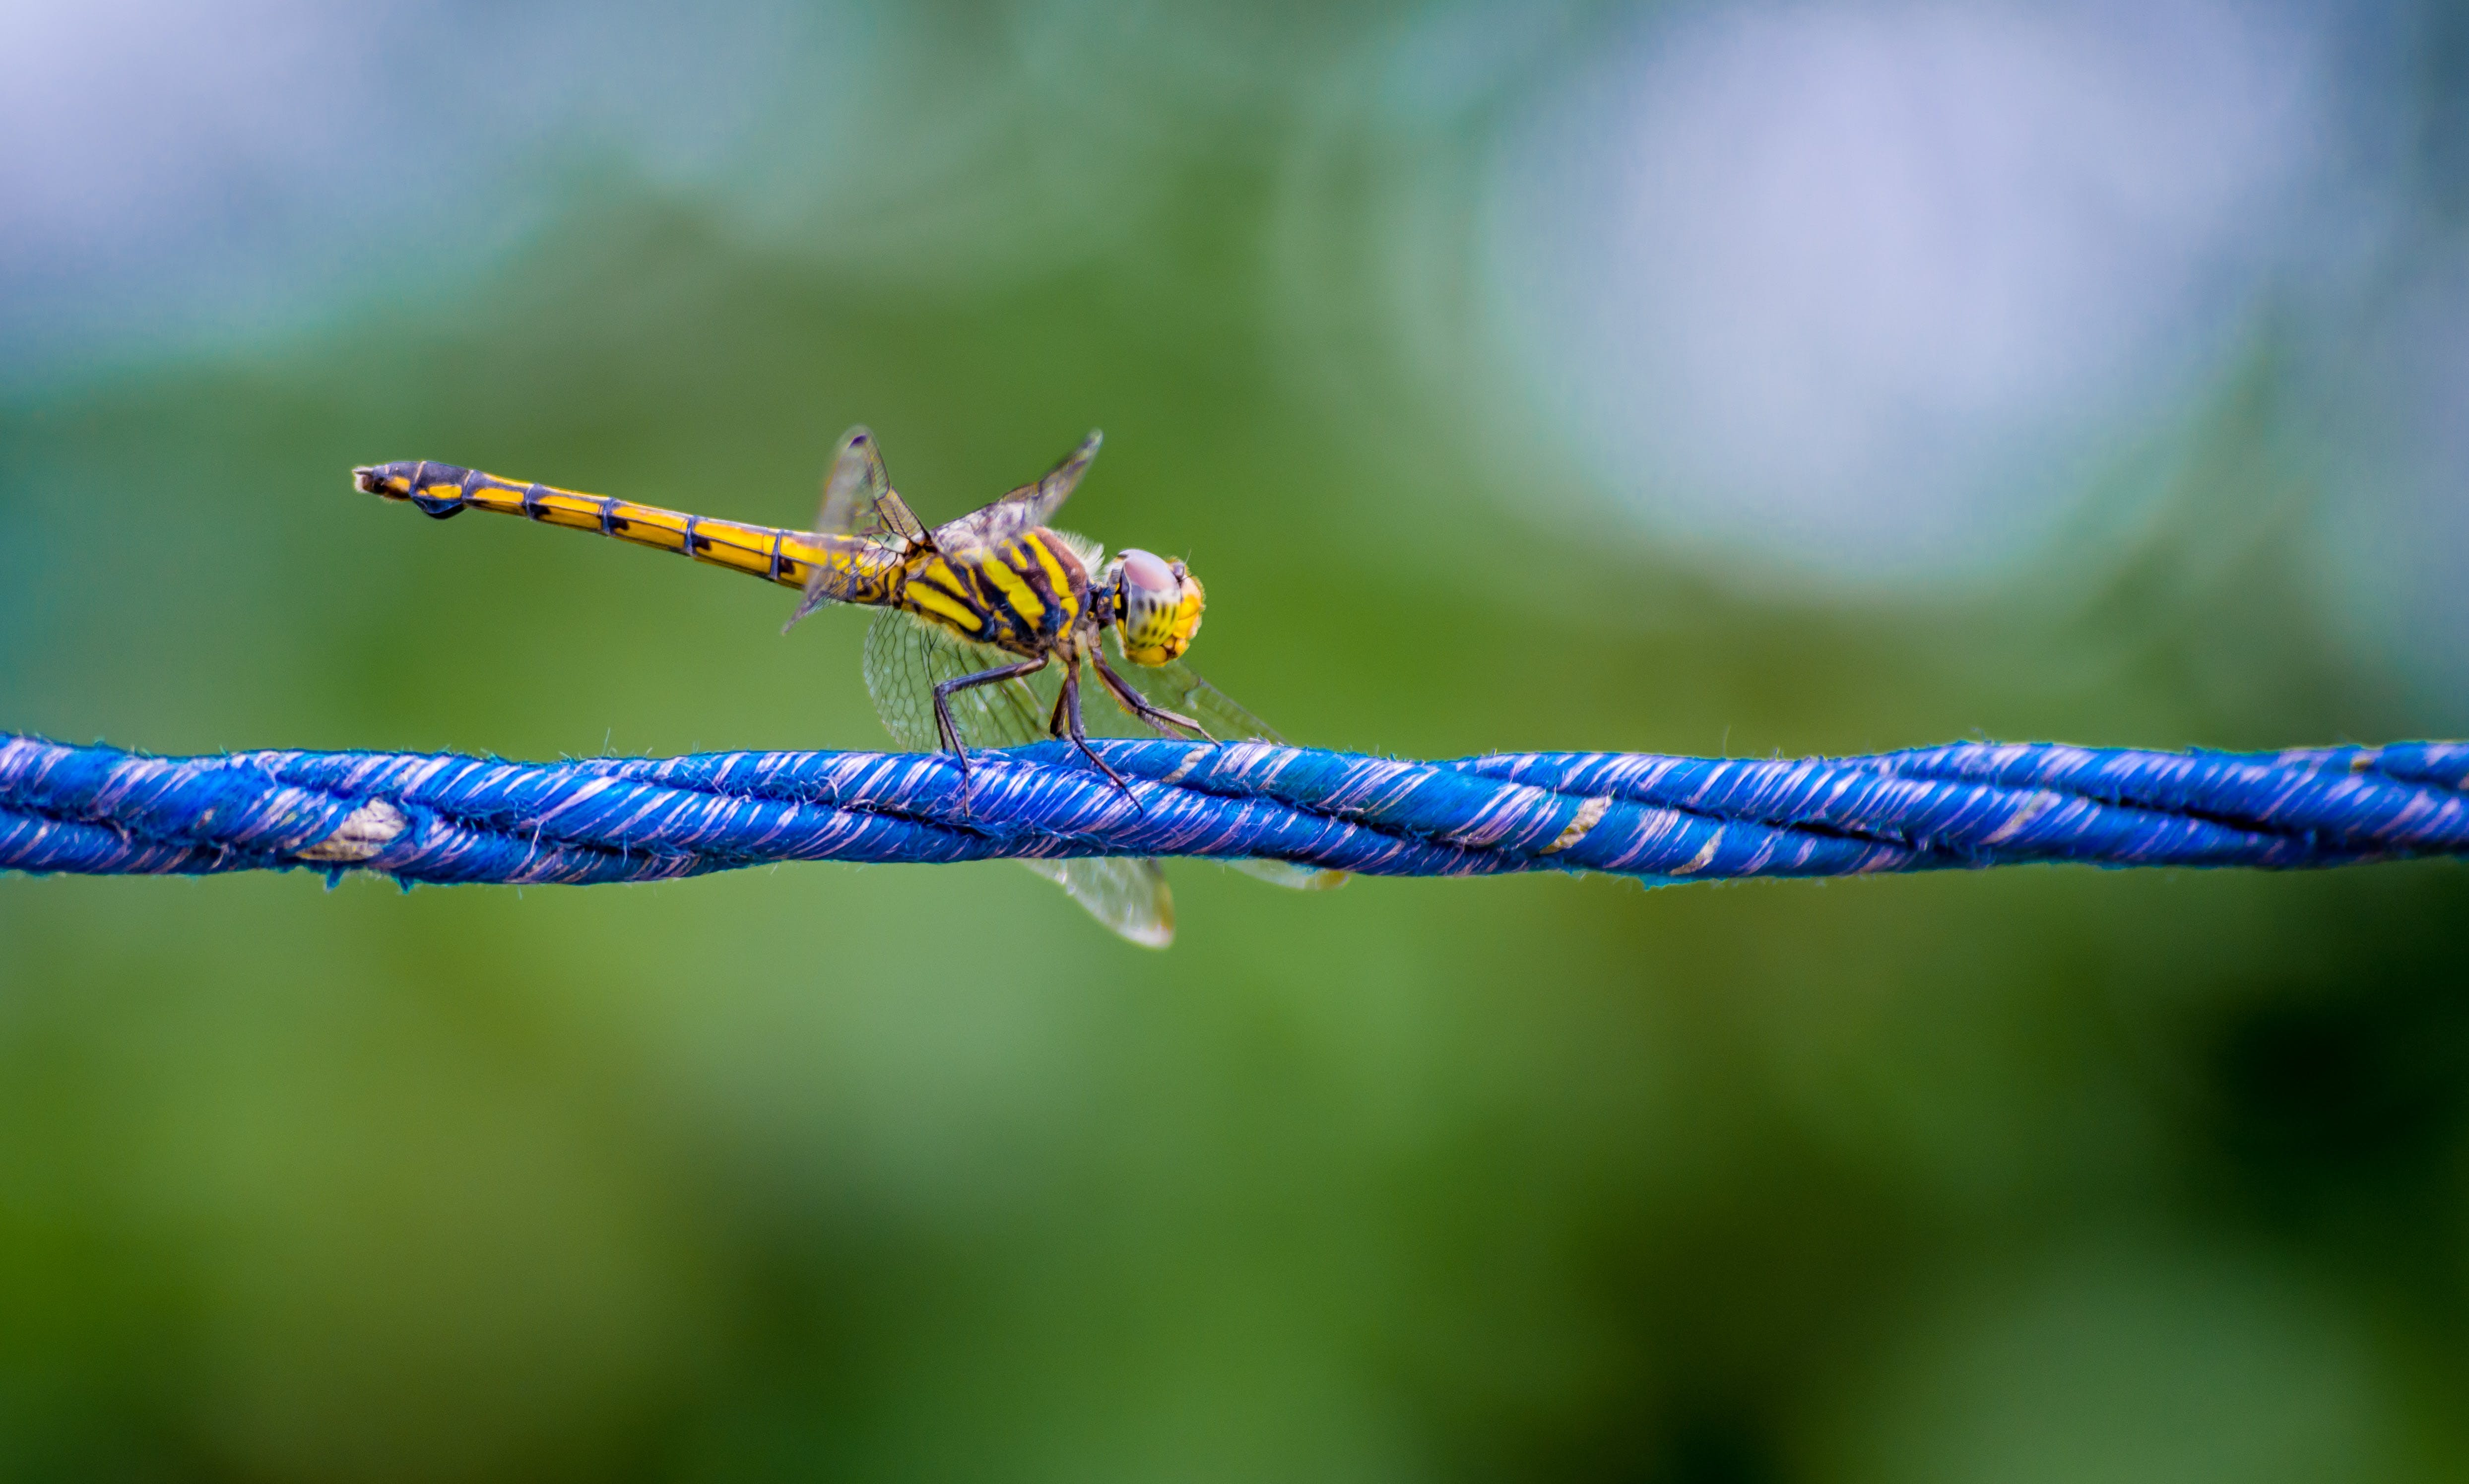 Macro Photography of a Dragonfly